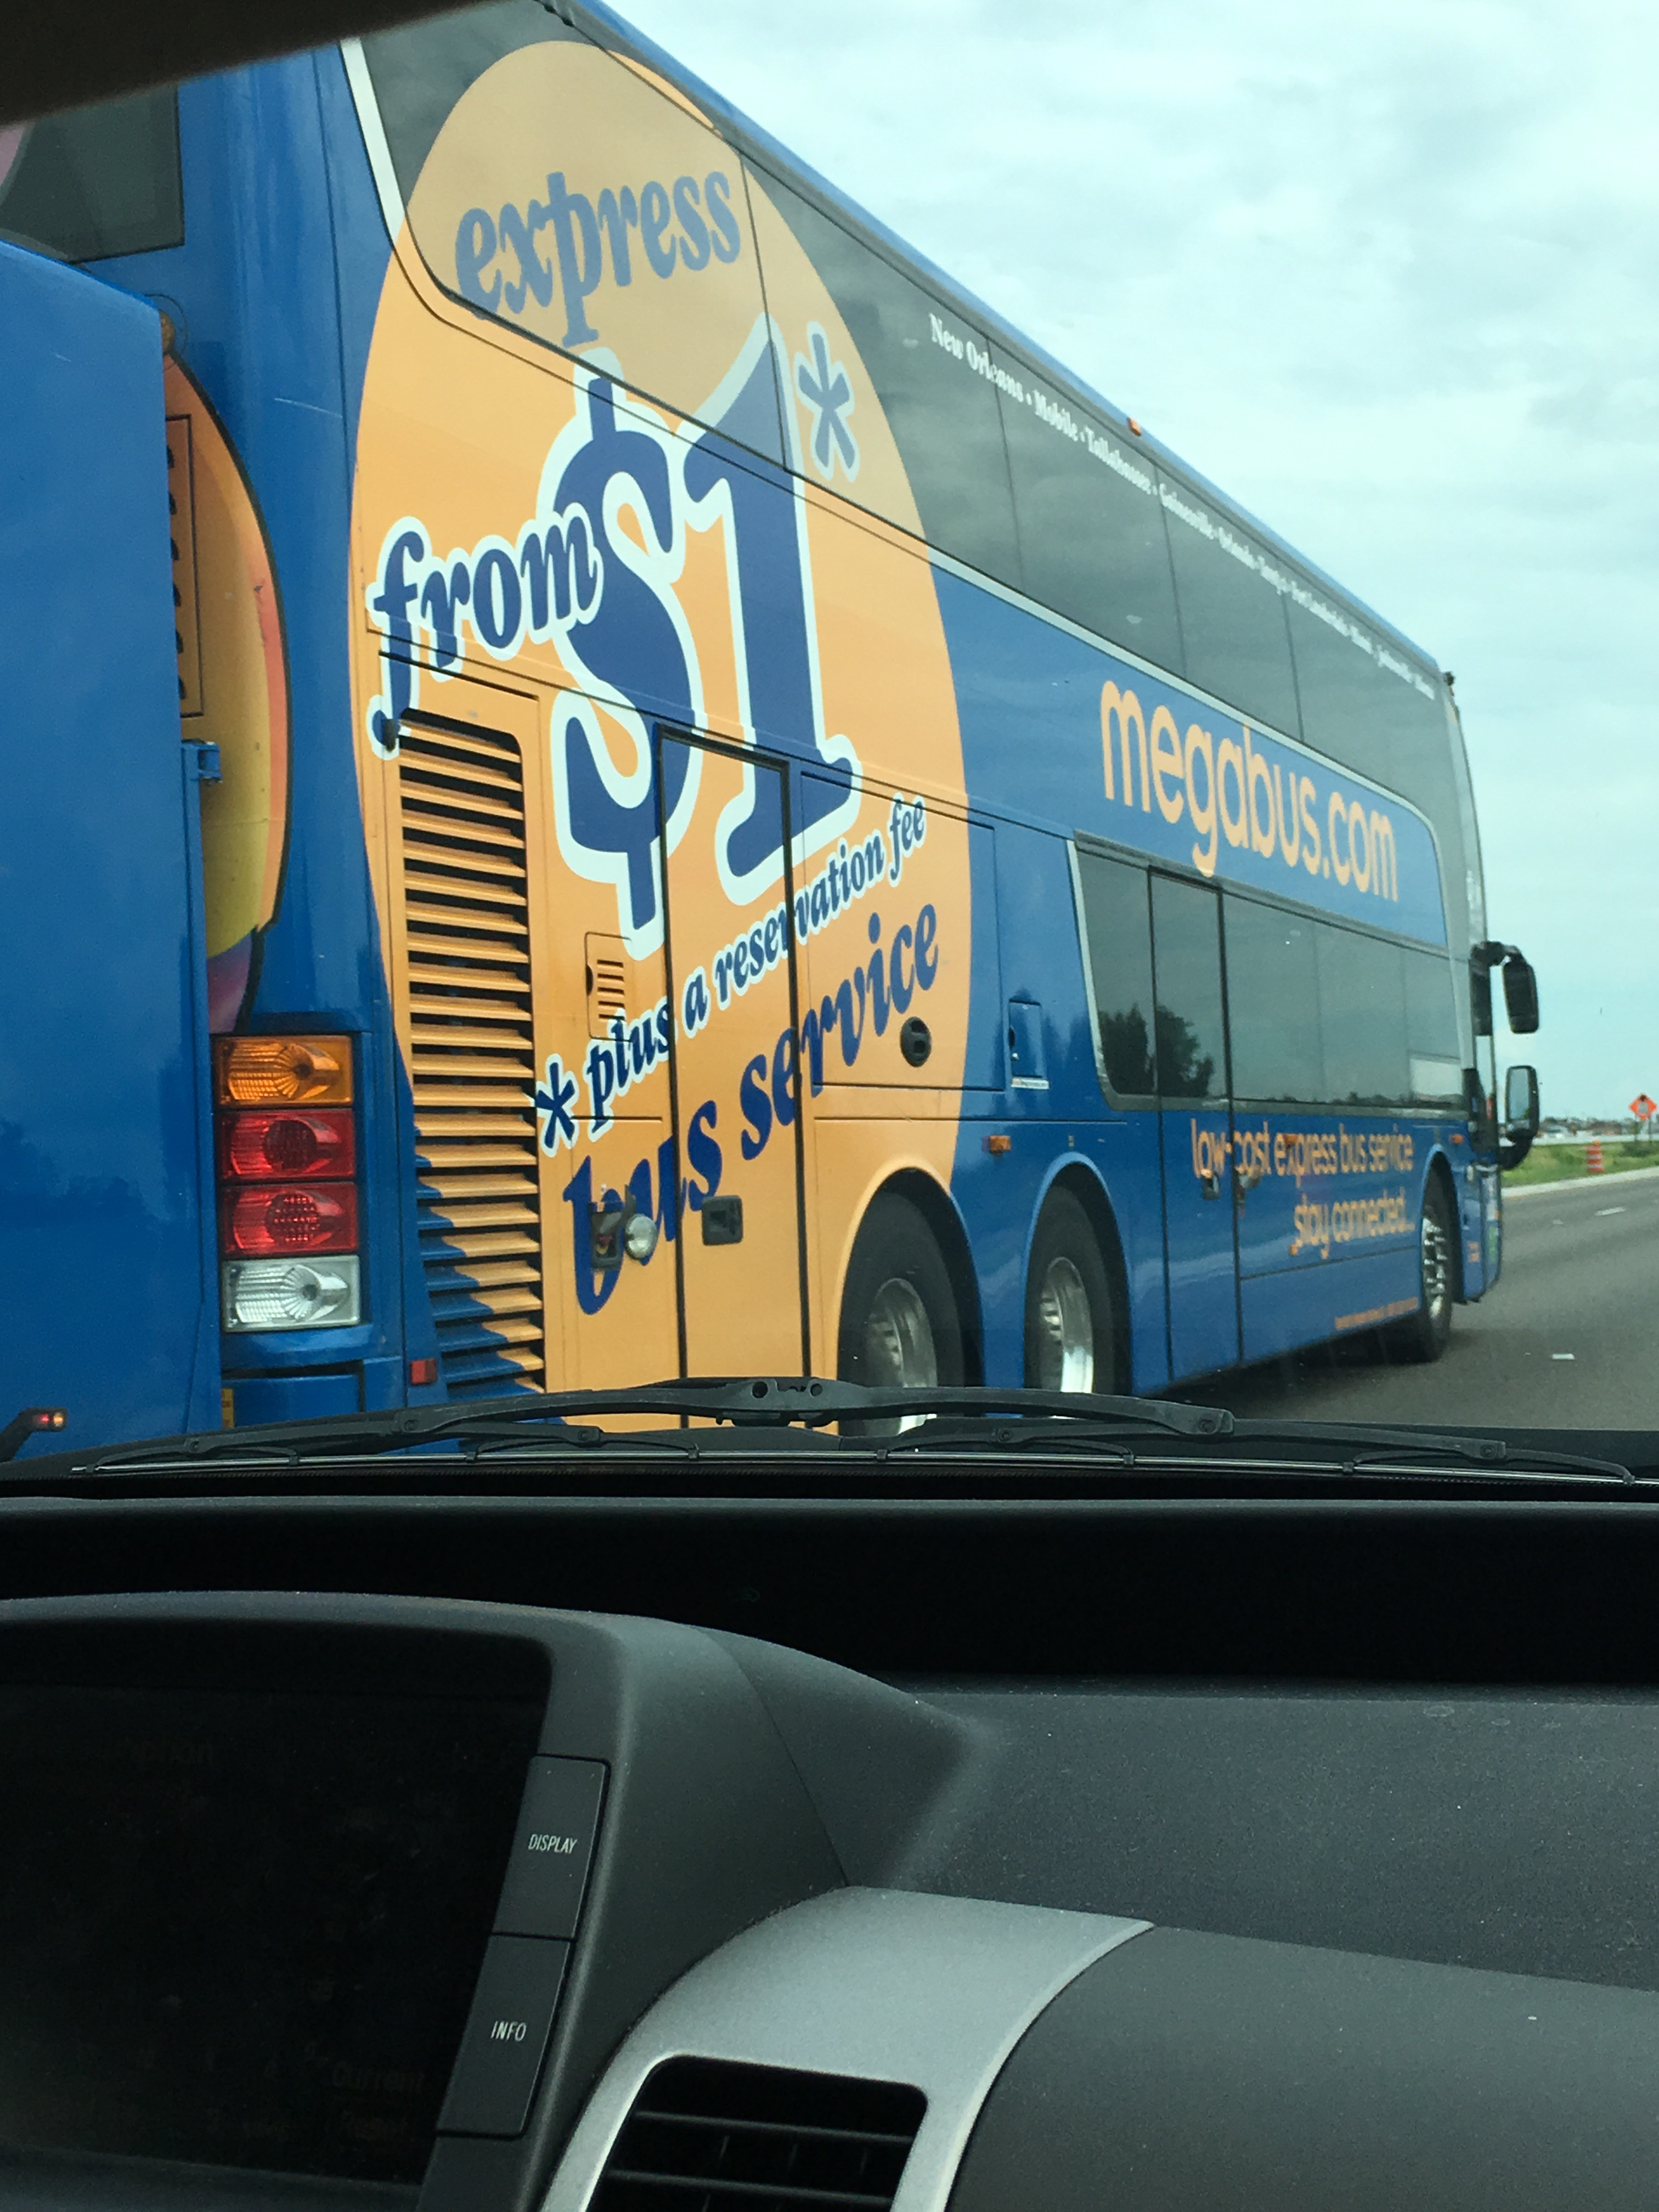 Images of Bus Transportation From Orlando To Miami - #rock-cafe